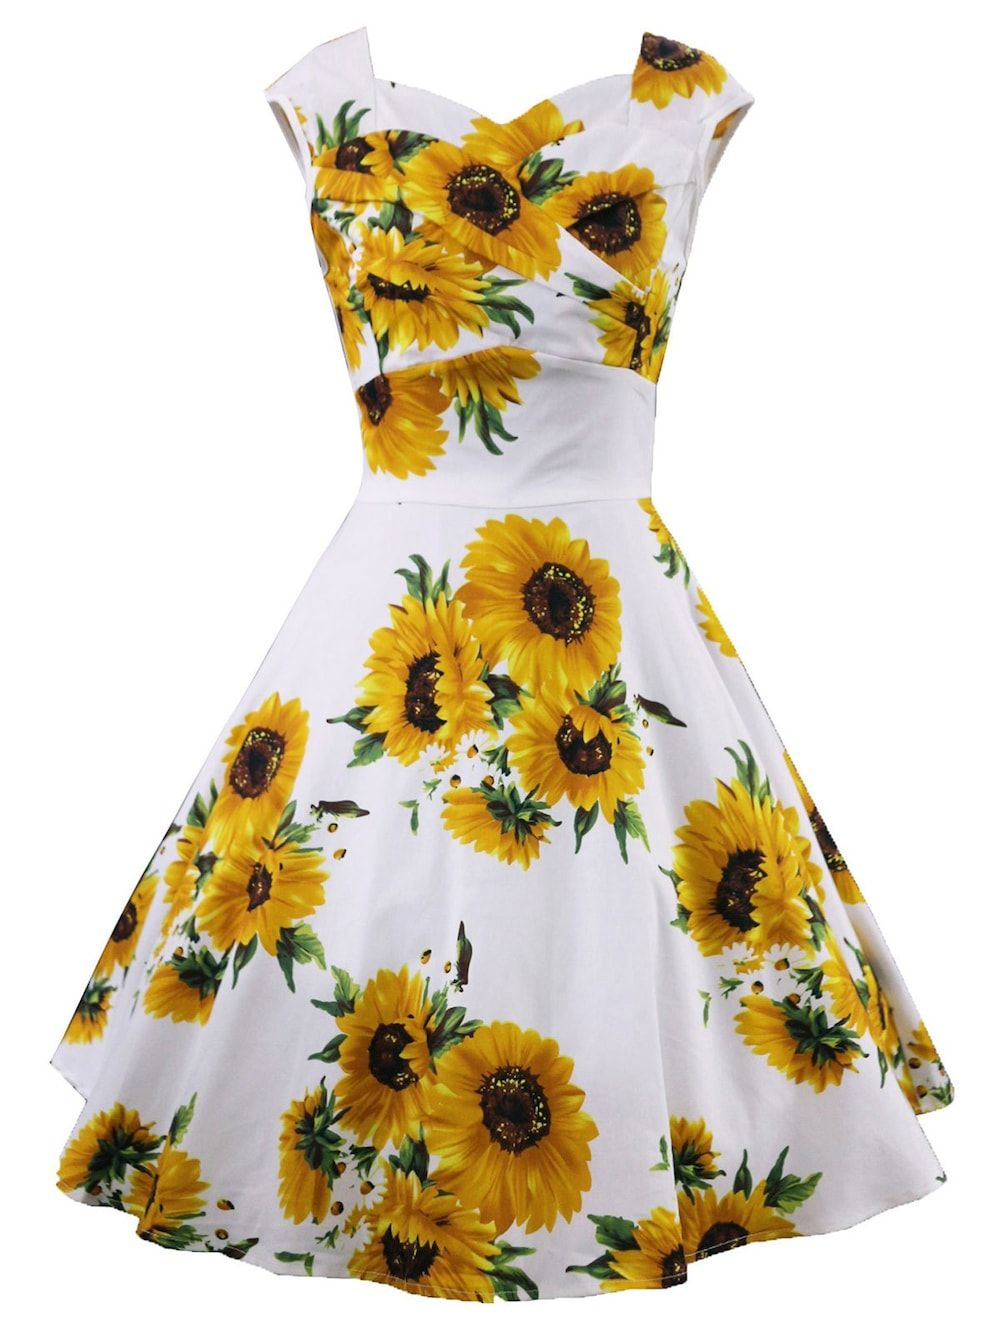 faec2275097 Vintage Sunflower Print Ruched Pin Up Dress White L Clothes